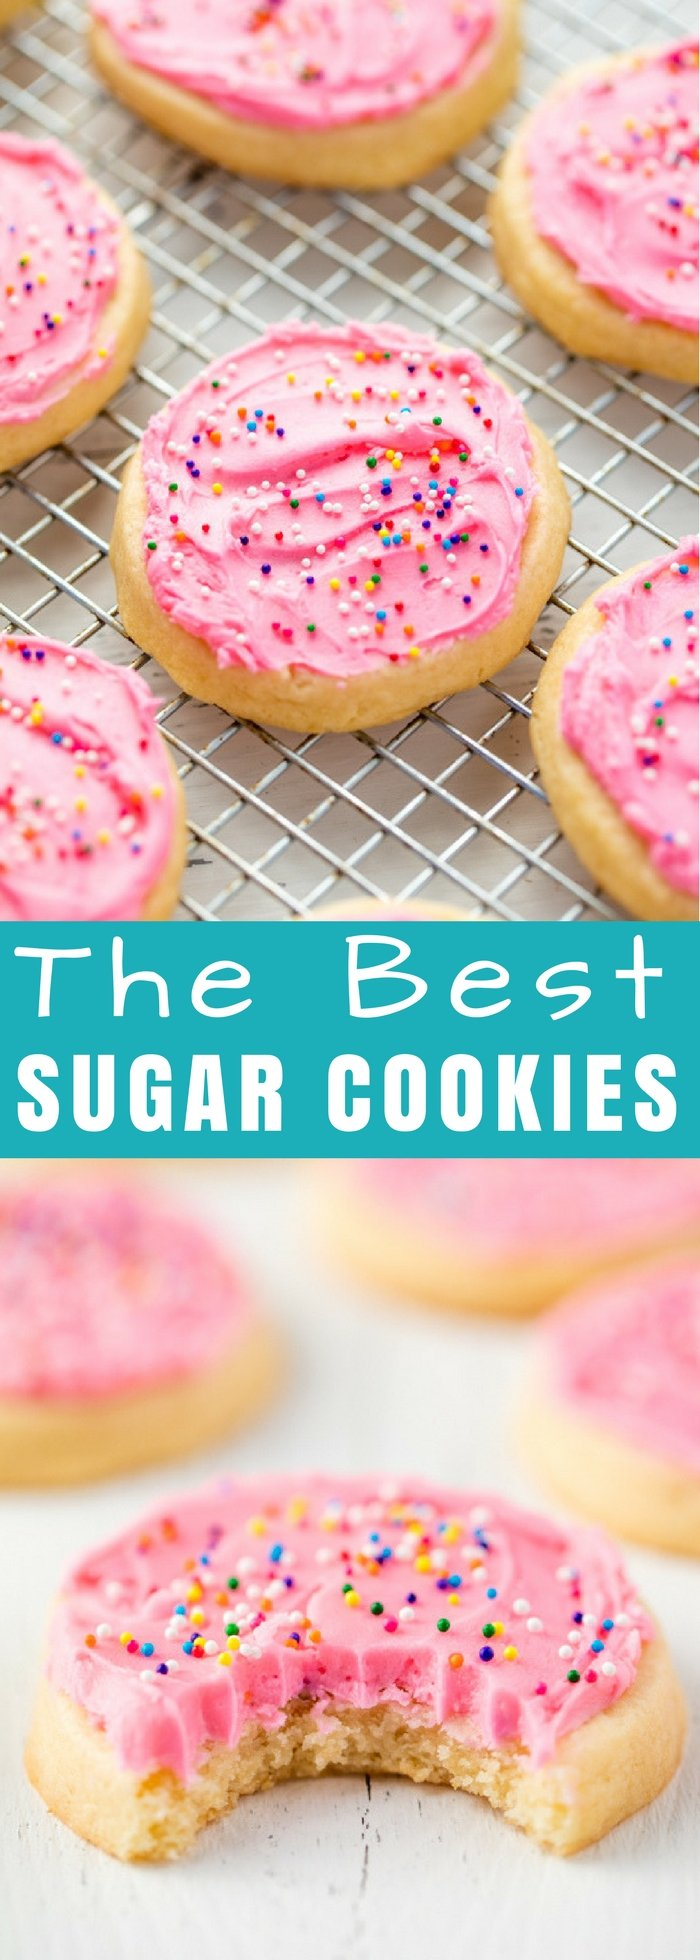 This Sugar Cookie recipe is absolute perfection with a perfectly soft sugar cookie every single time. It's the perfect easy sugar cookie recipe for every occasion!